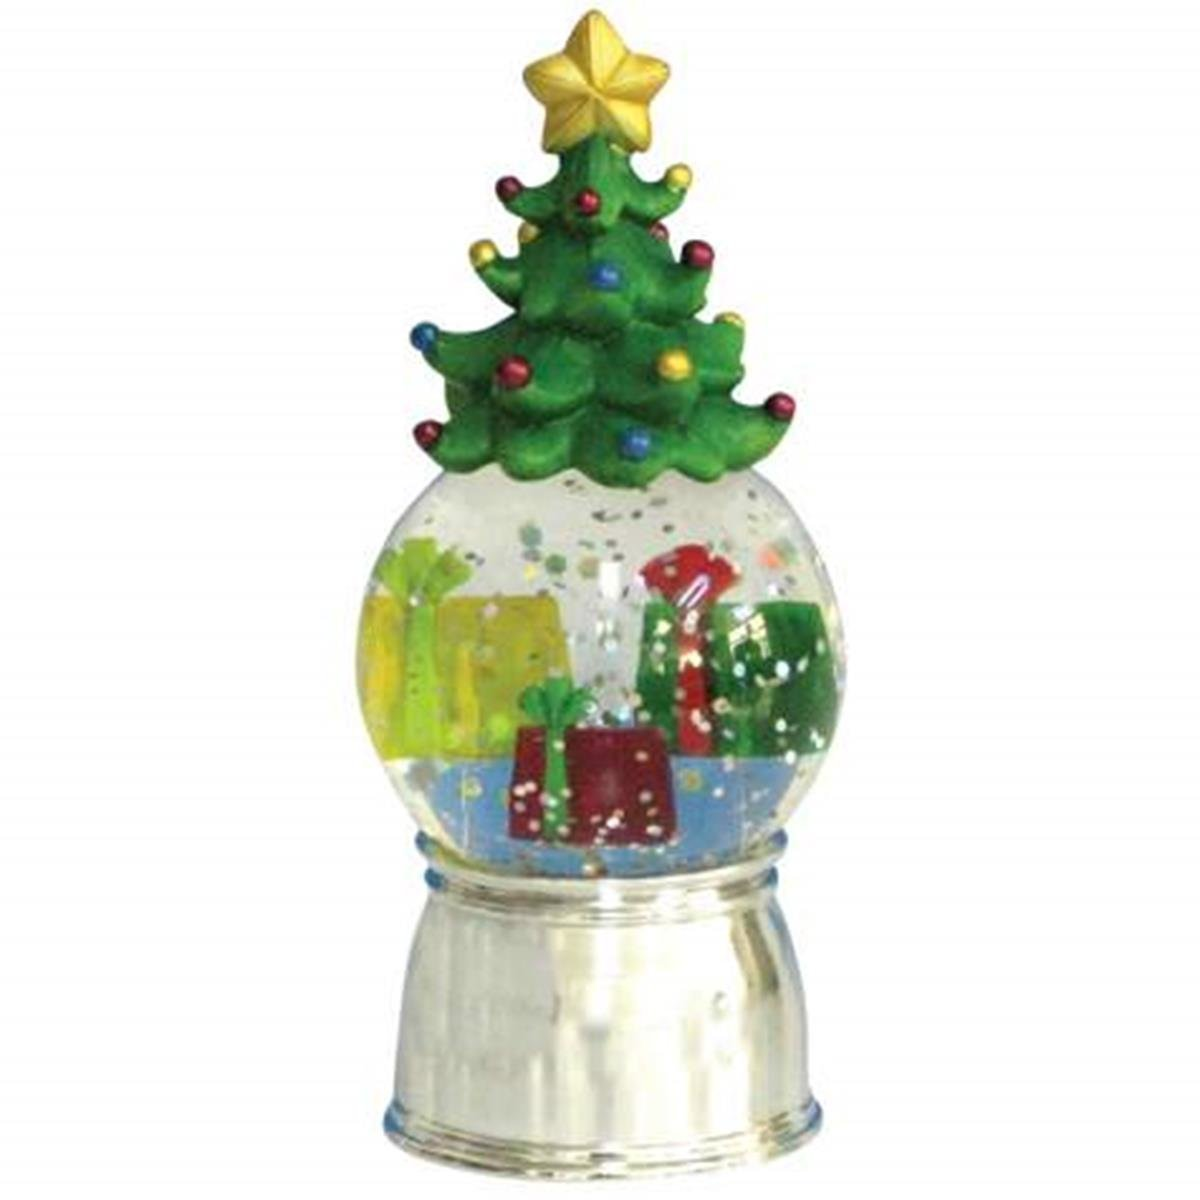 Lighted Holiday Water Globe With Presents Under Christmas